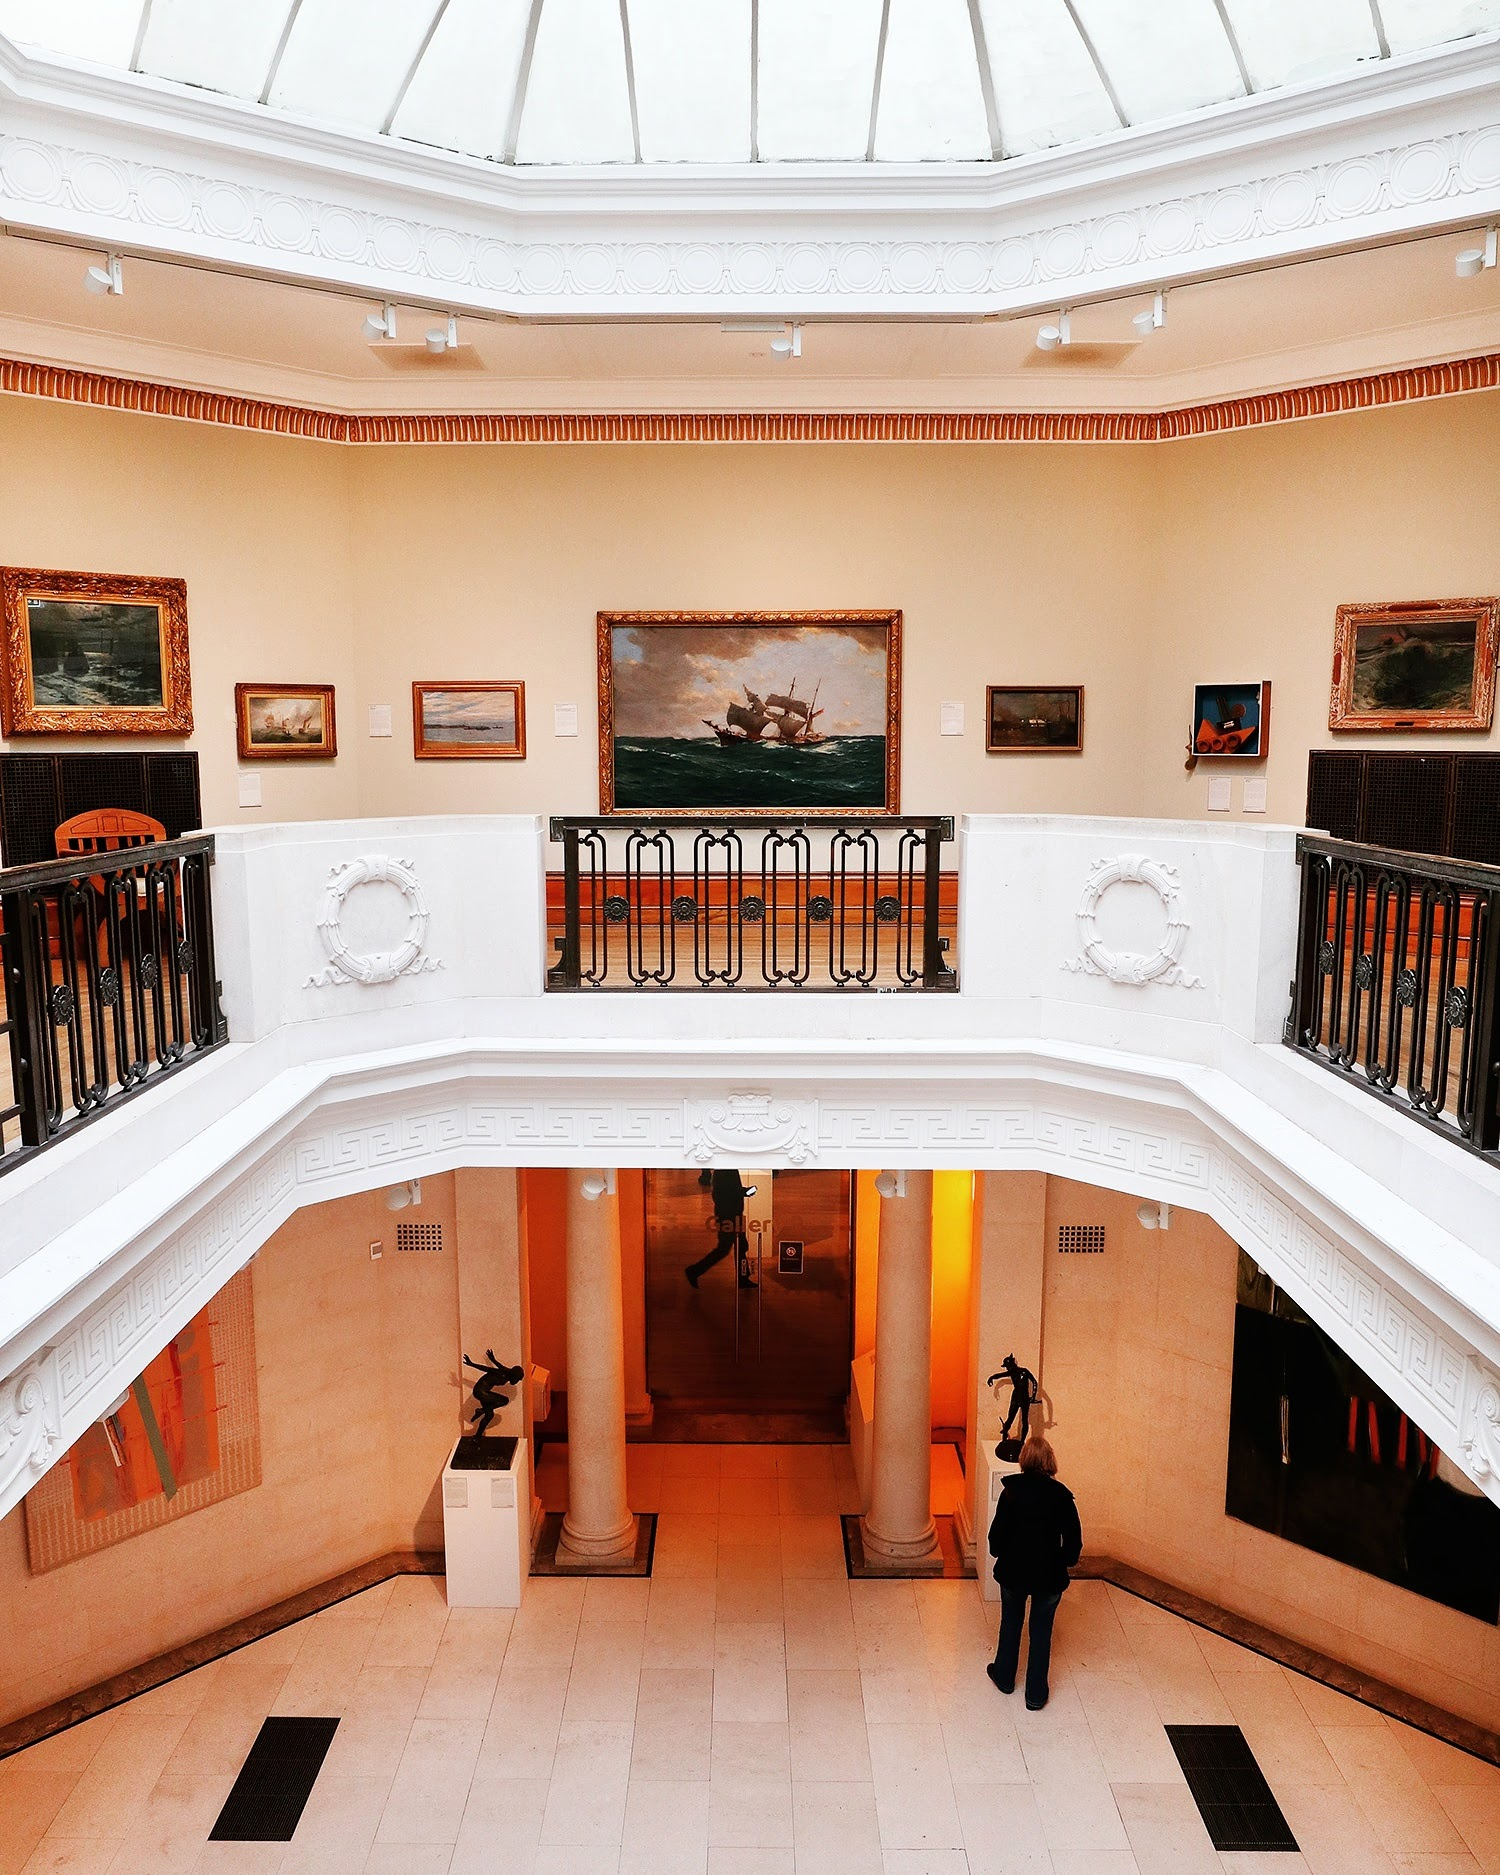 Ferens Art Gallery, Hull UK